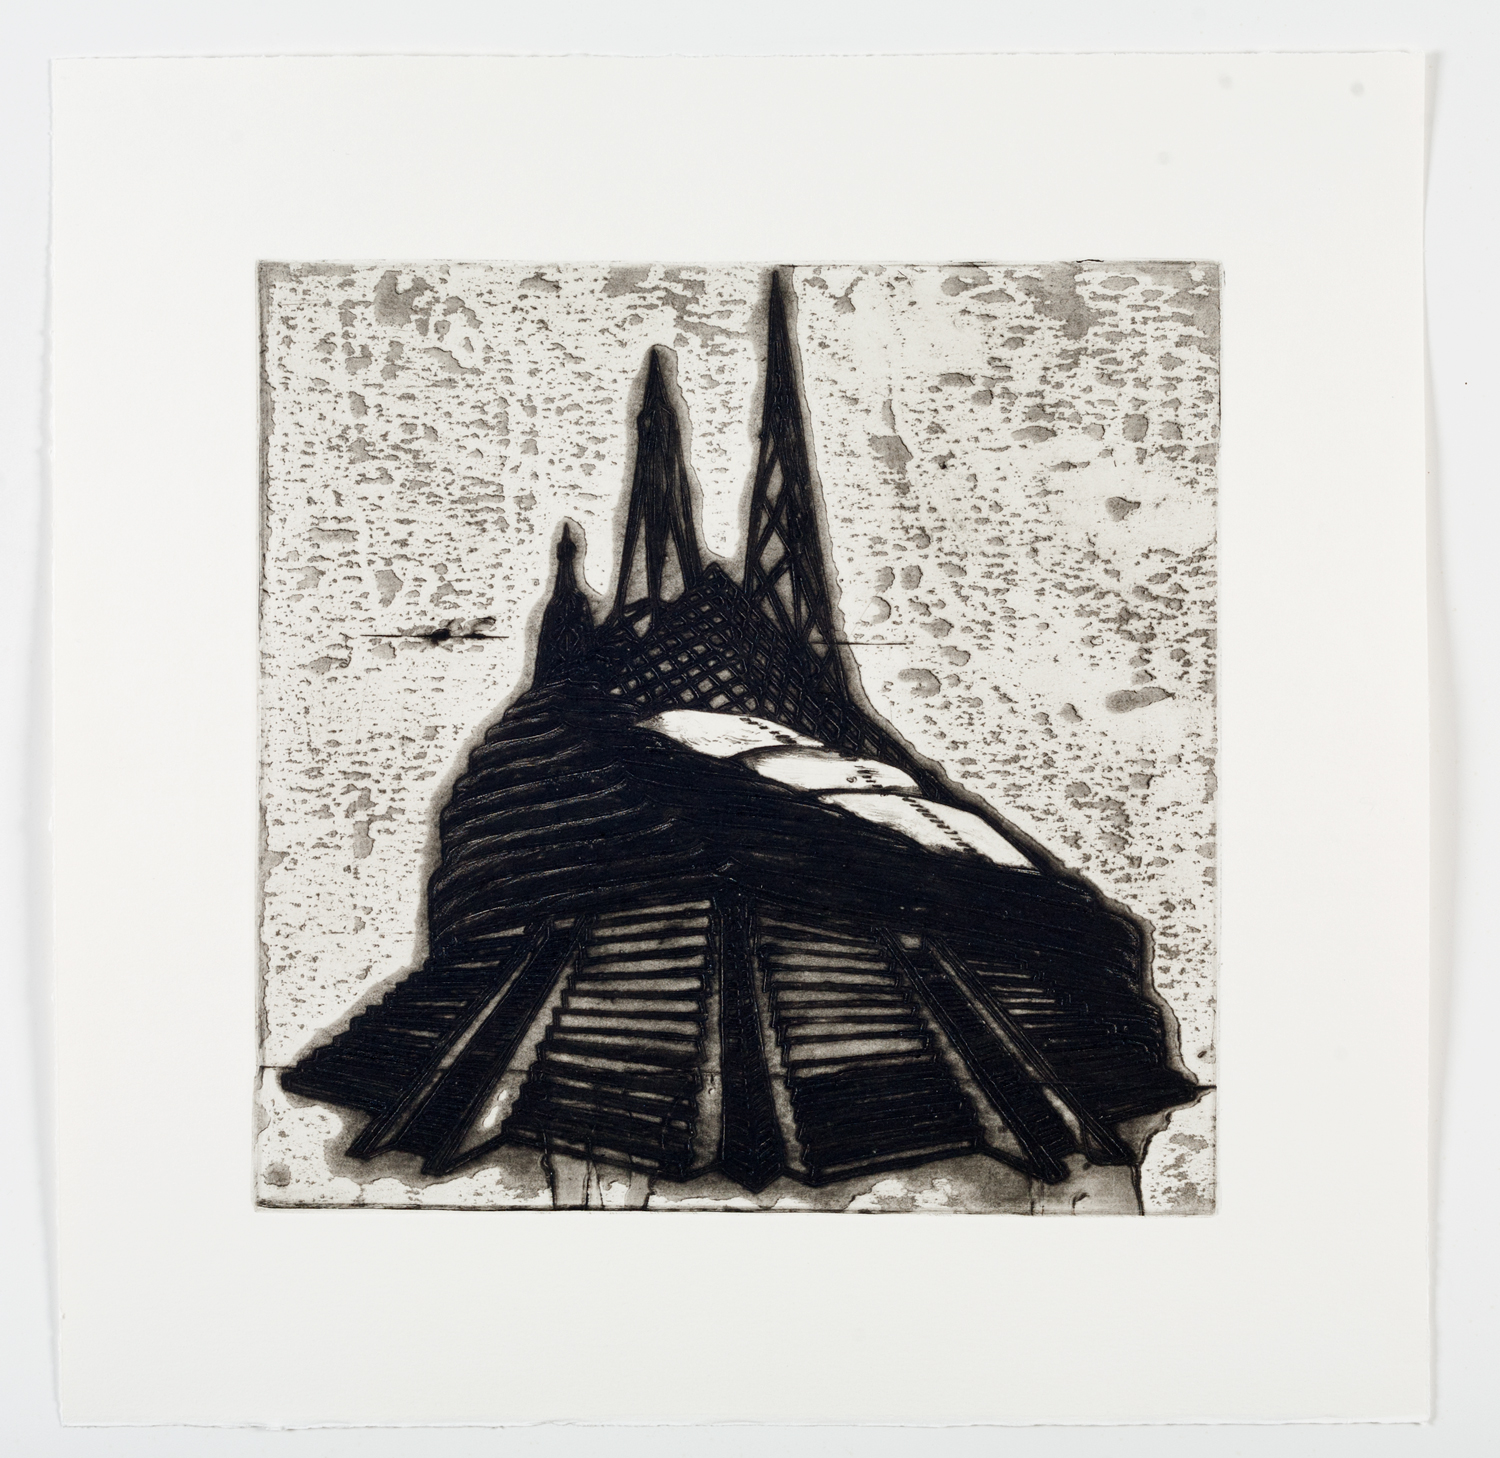 """Ideal Structures for a Dubious Future (Pyramid Temple)  2012; Explosive intaglio on paper; 16 7/8"""" x 16 3/4""""; Self published; Edition of 12"""